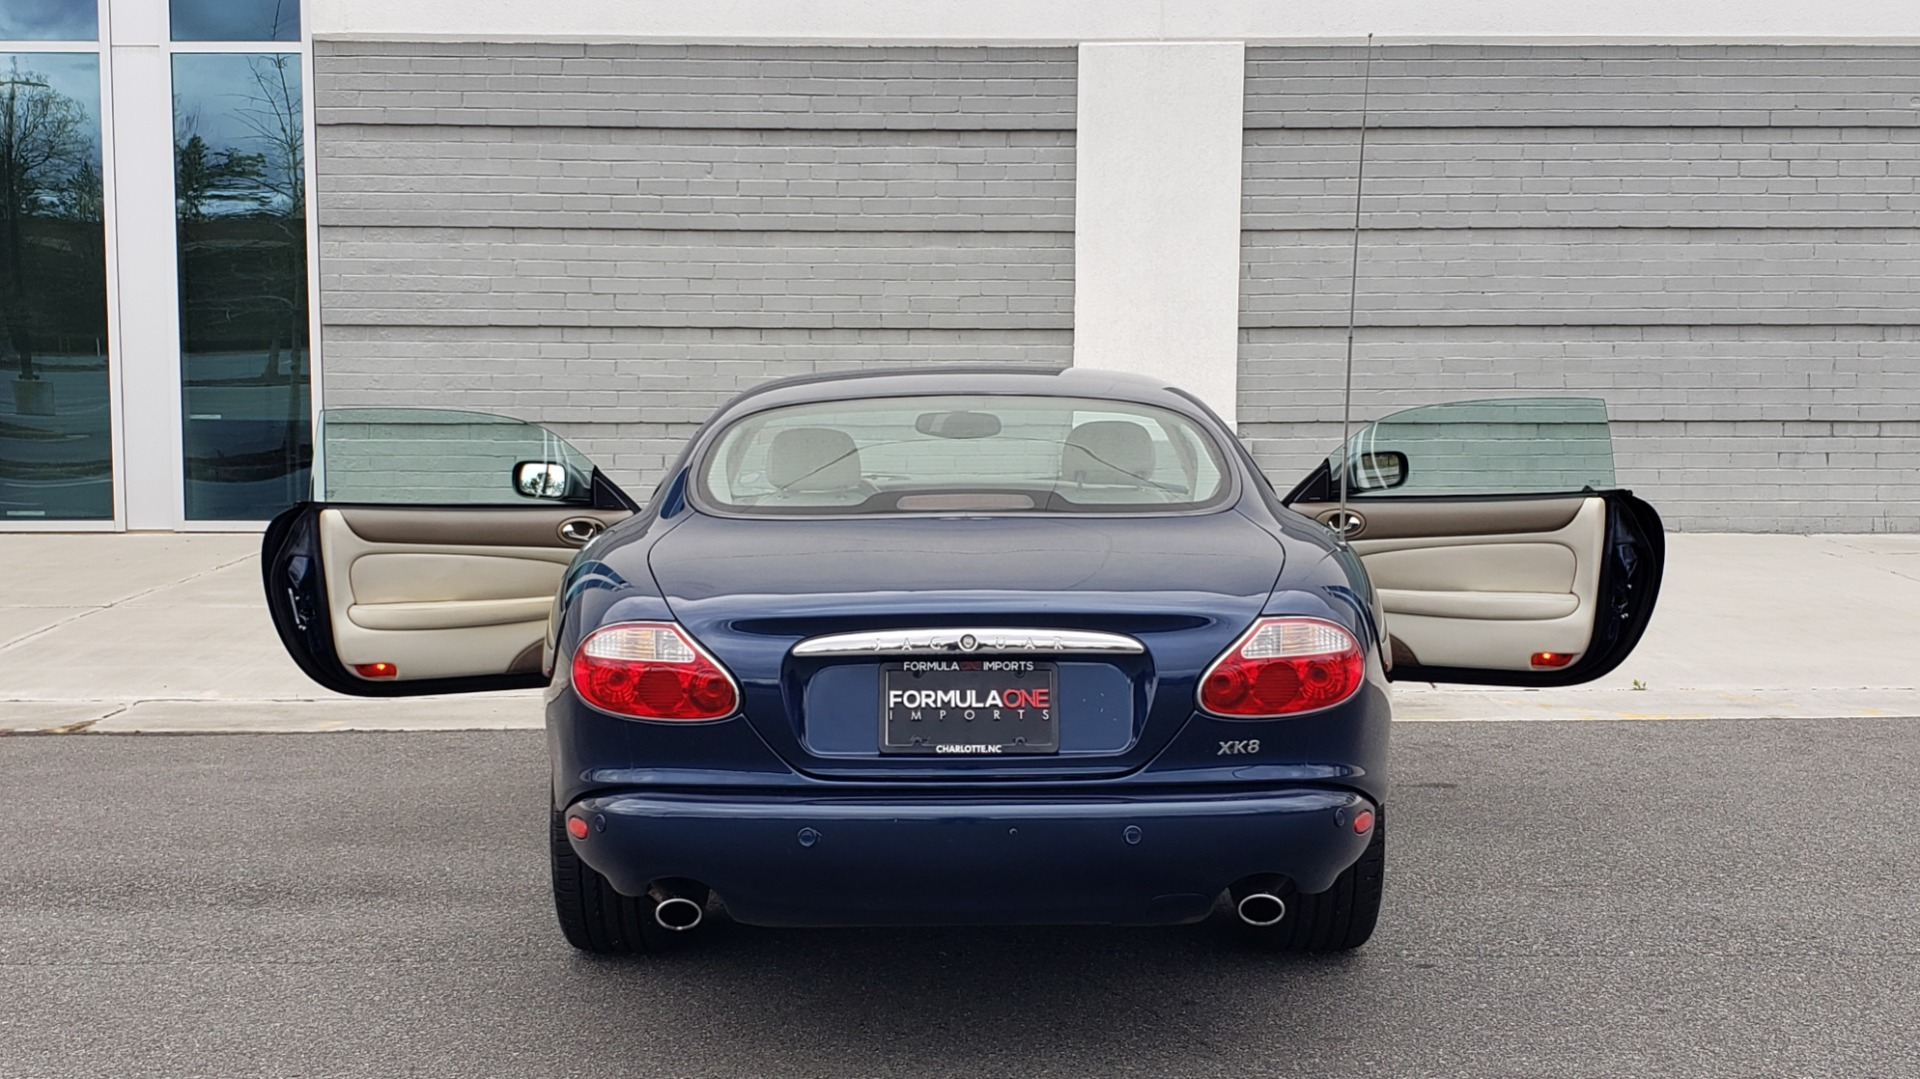 Used 2002 Jaguar XK8 COUPE / 4.0L V8 / 5-SPD AUTO / ALPINE SOUND / 18IN CHROME WHEELS for sale $16,450 at Formula Imports in Charlotte NC 28227 29